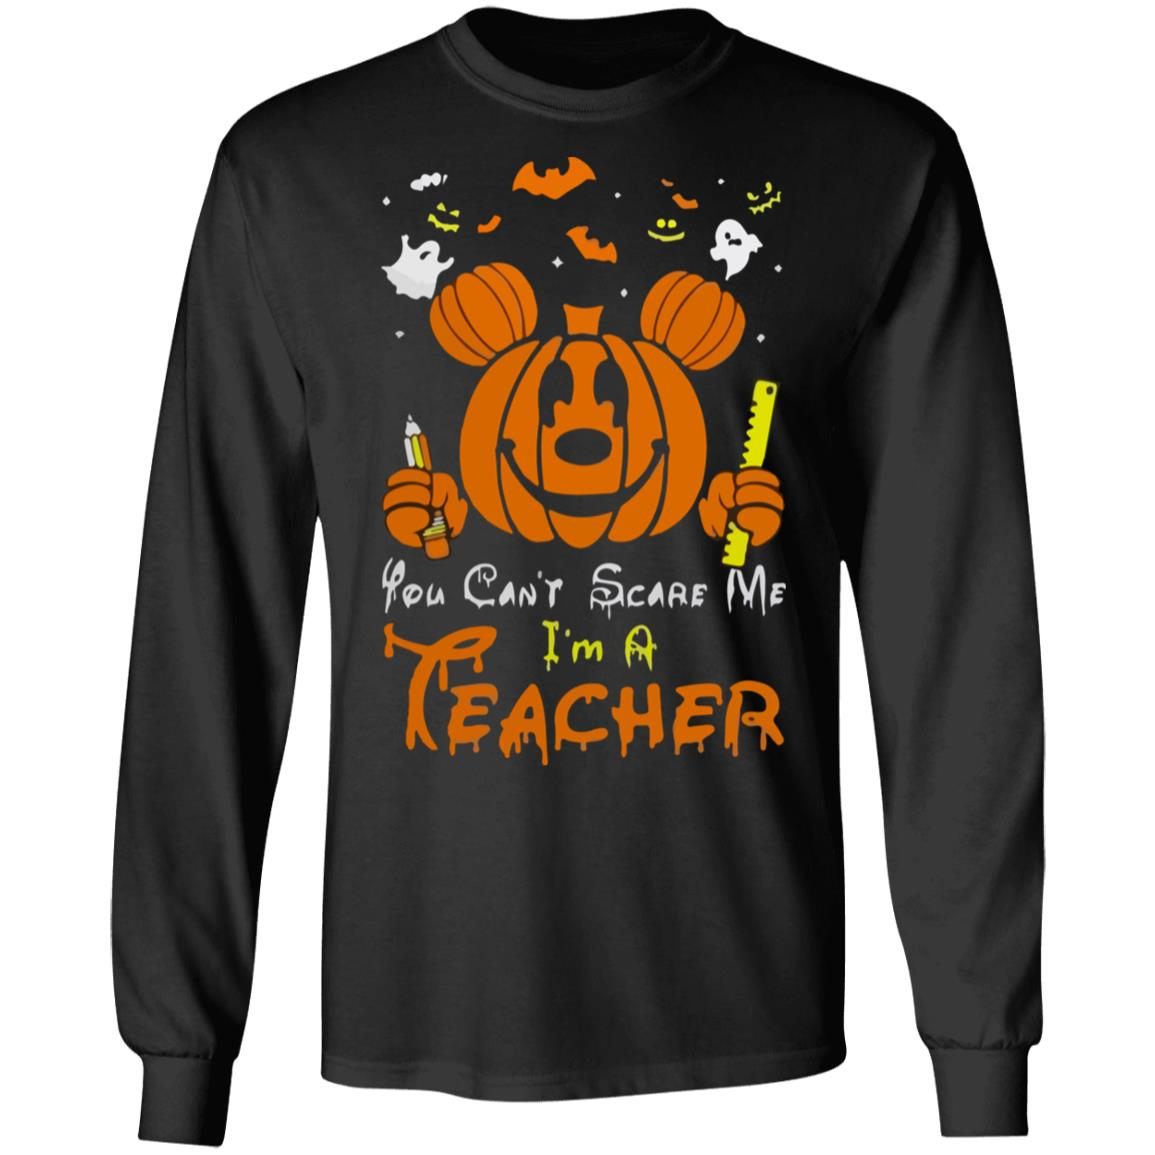 Ladies Mickey Mouse Halloween 2019 Flowy Off the Shoulder Long Sleeve t-shirt